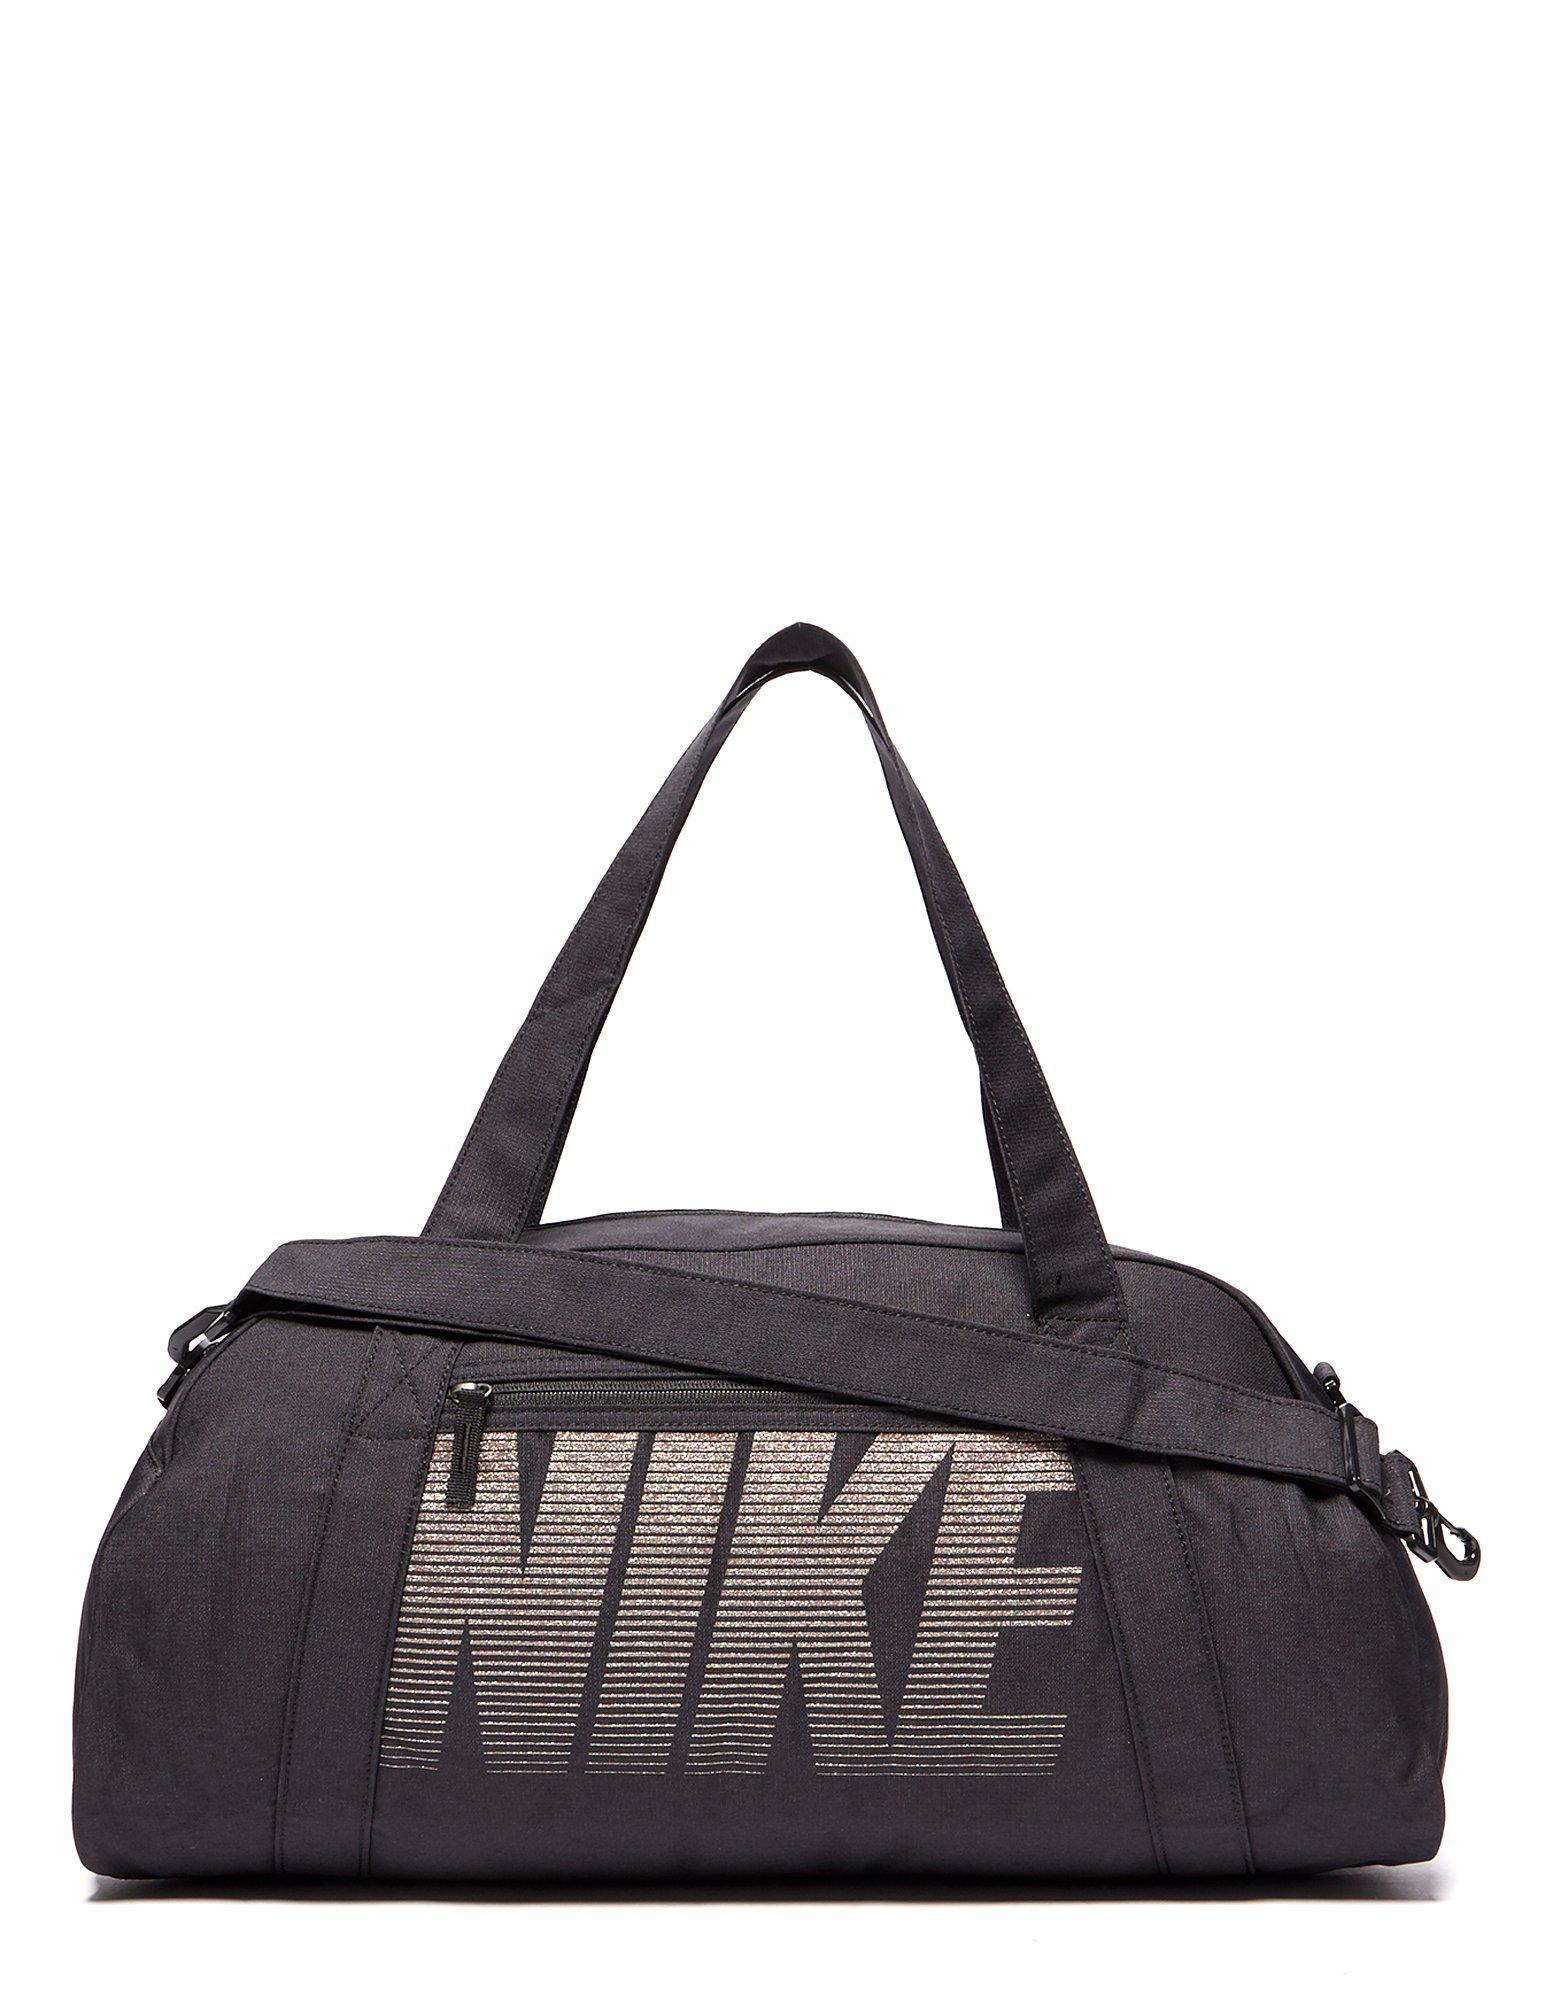 e67b5aefe1 Lyst - Nike Gym Club Training Duffle Bag in Black for Men